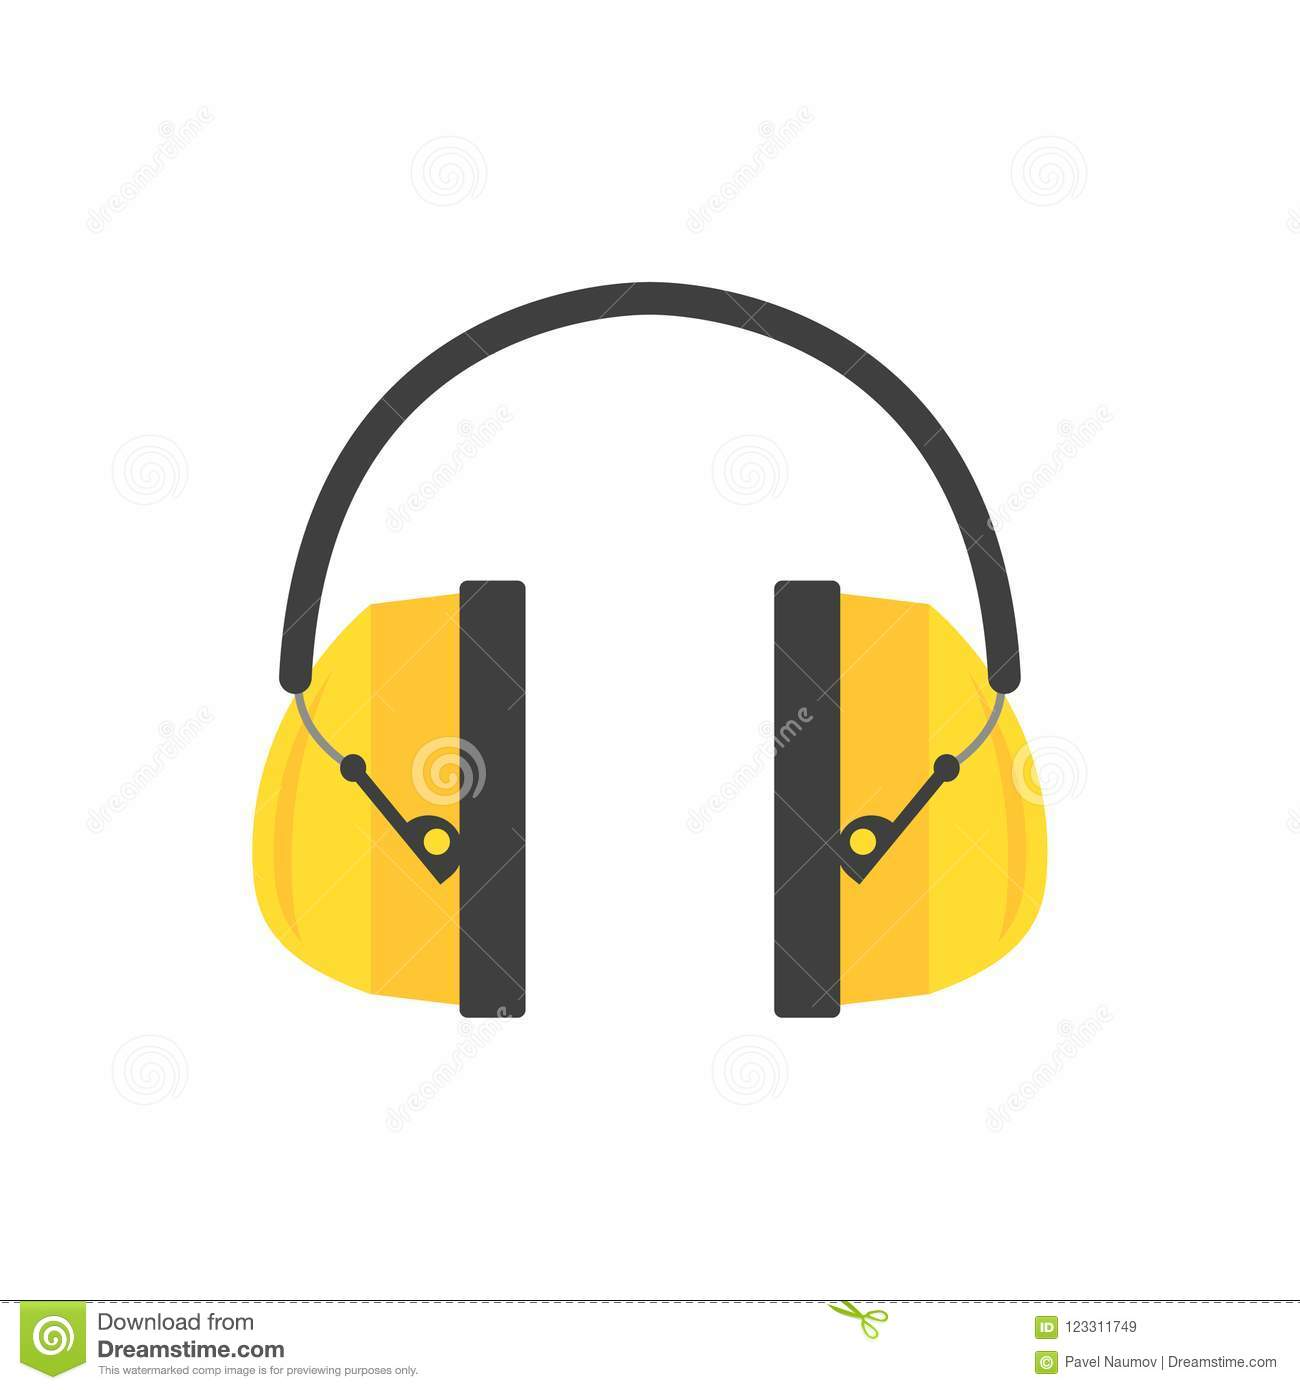 Protective ear muffs. Yellow headphones for construction worker. Professional equipment for hearing safety. Flat vector